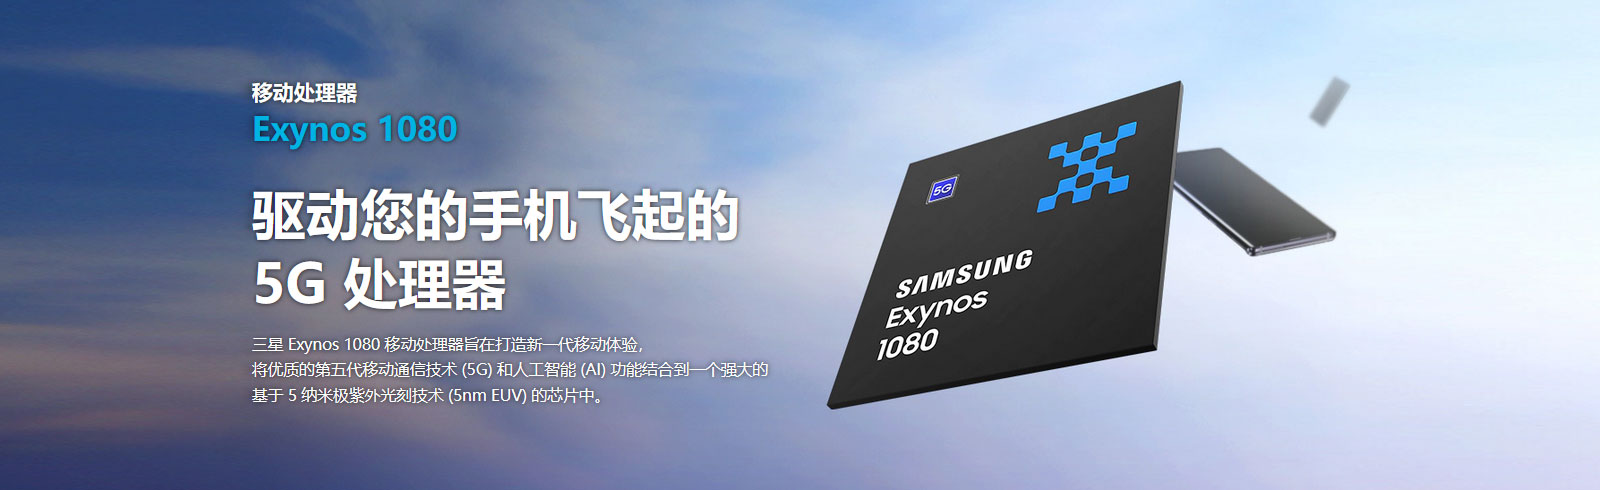 Samsung unveils the Exynos 1080 chipset, Vivo will be the first brand to use this chipset